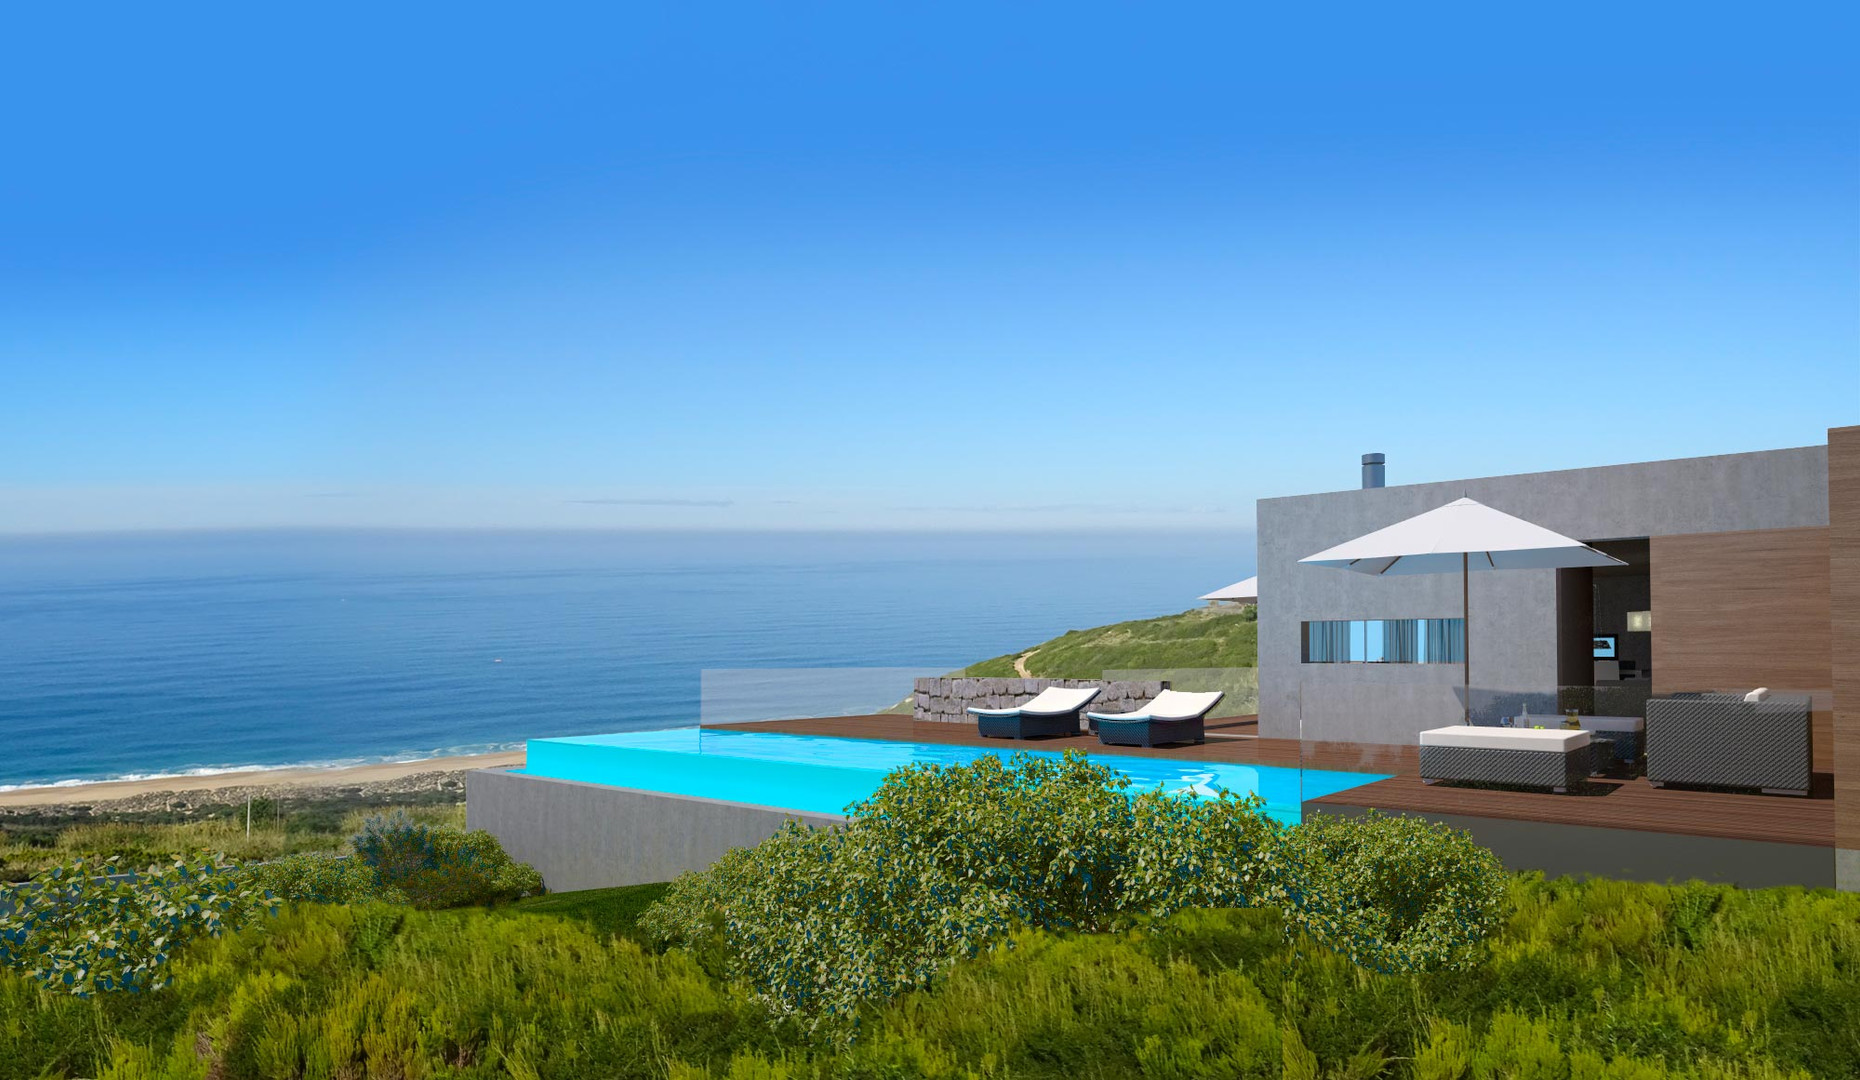 presprop-portugal-construction-berlenga-